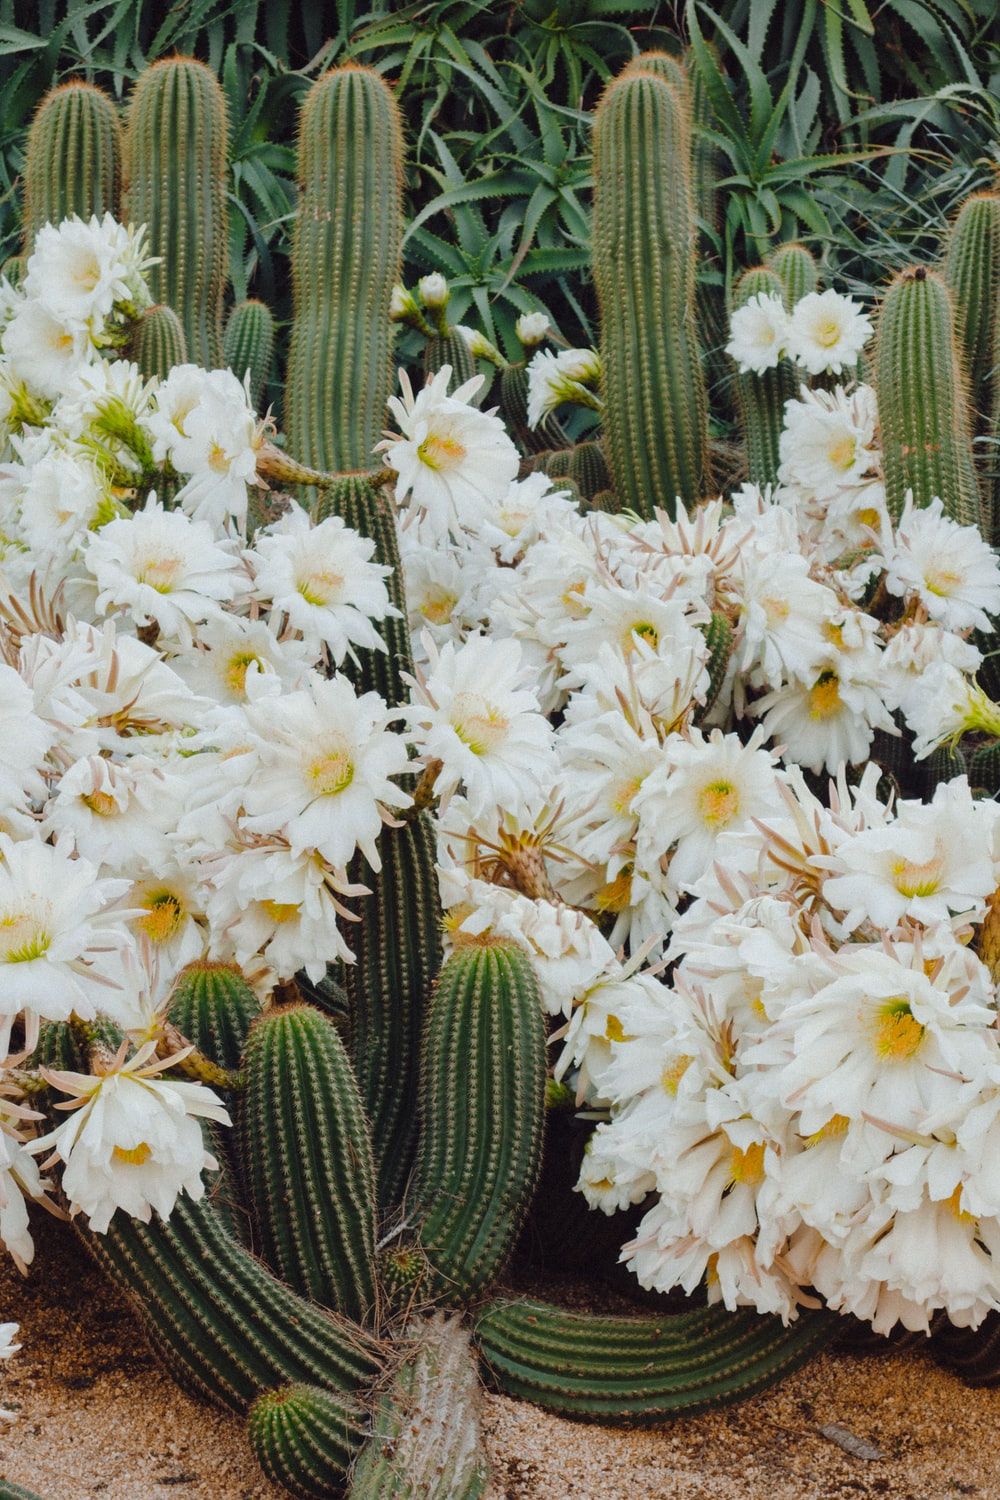 green cactus with flowers